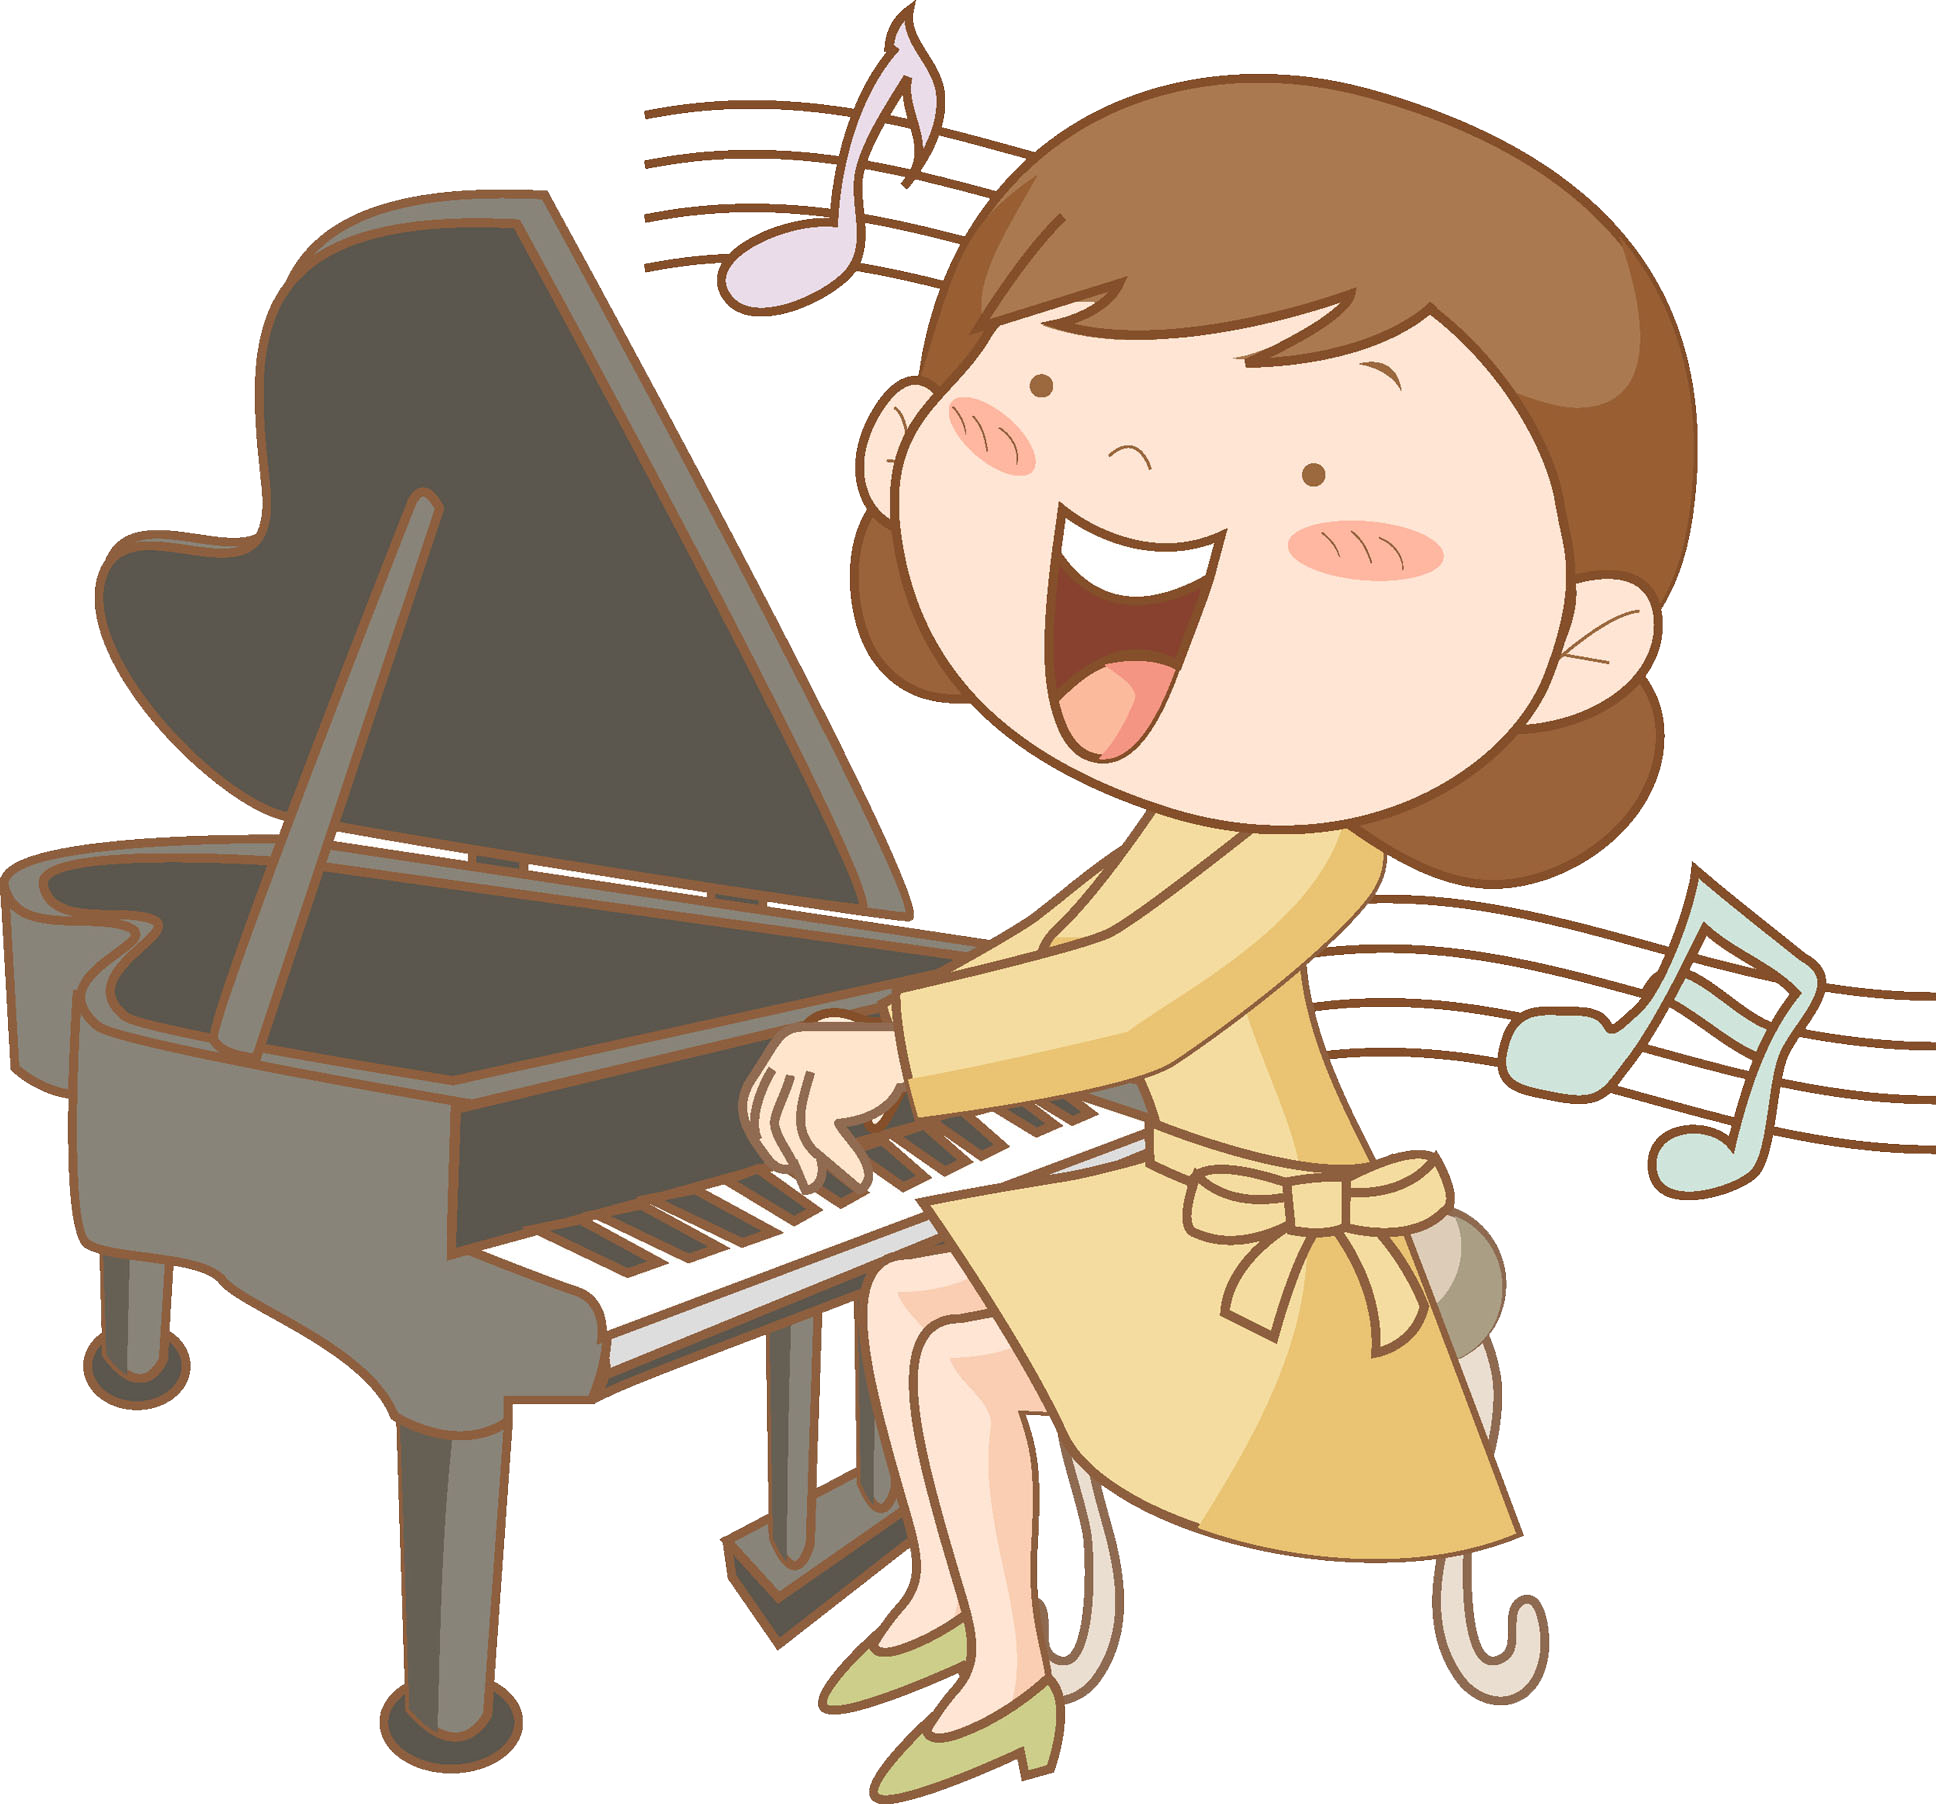 Piano clipart pianist. Cartoon drawing clip art